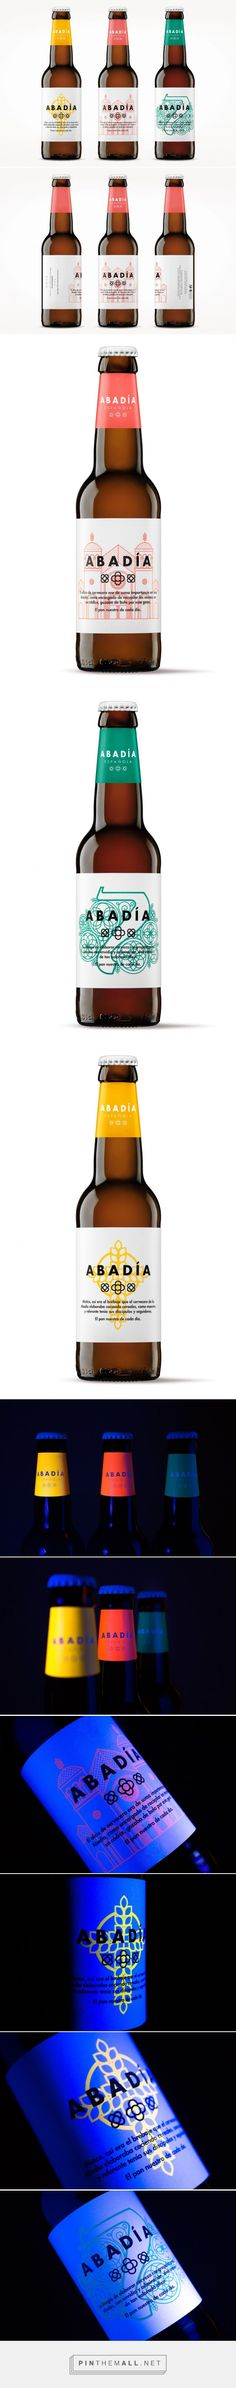 Abbeys (Las Abadías) Packaging of the World - Creative Package Design Gallery - http://www.packagingoftheworld.com/2016/01/abbeys-las-abadias.html